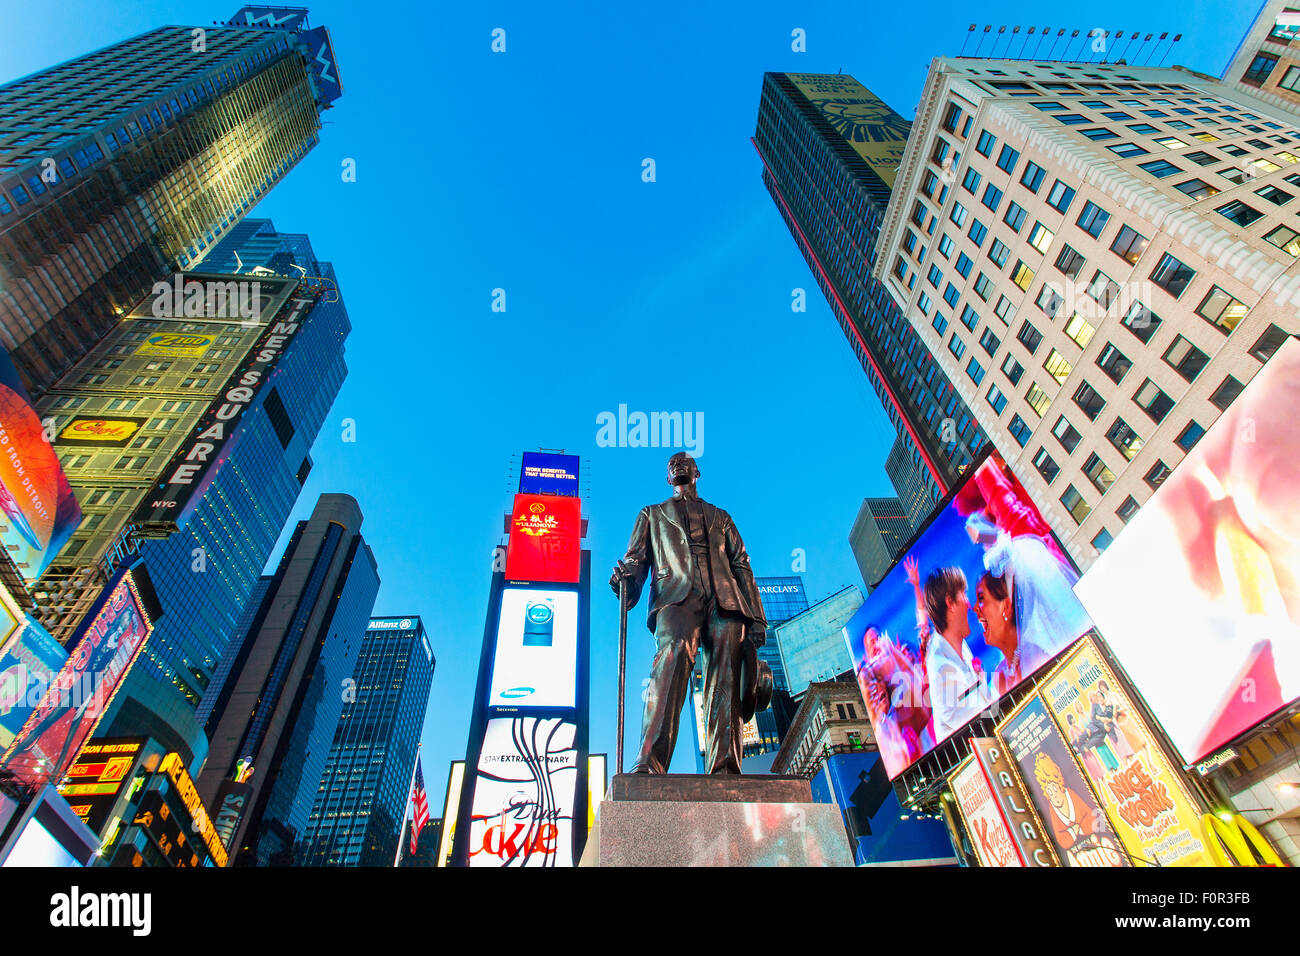 New York City, Statue of George M. Cohan at Times Square - Stock Image